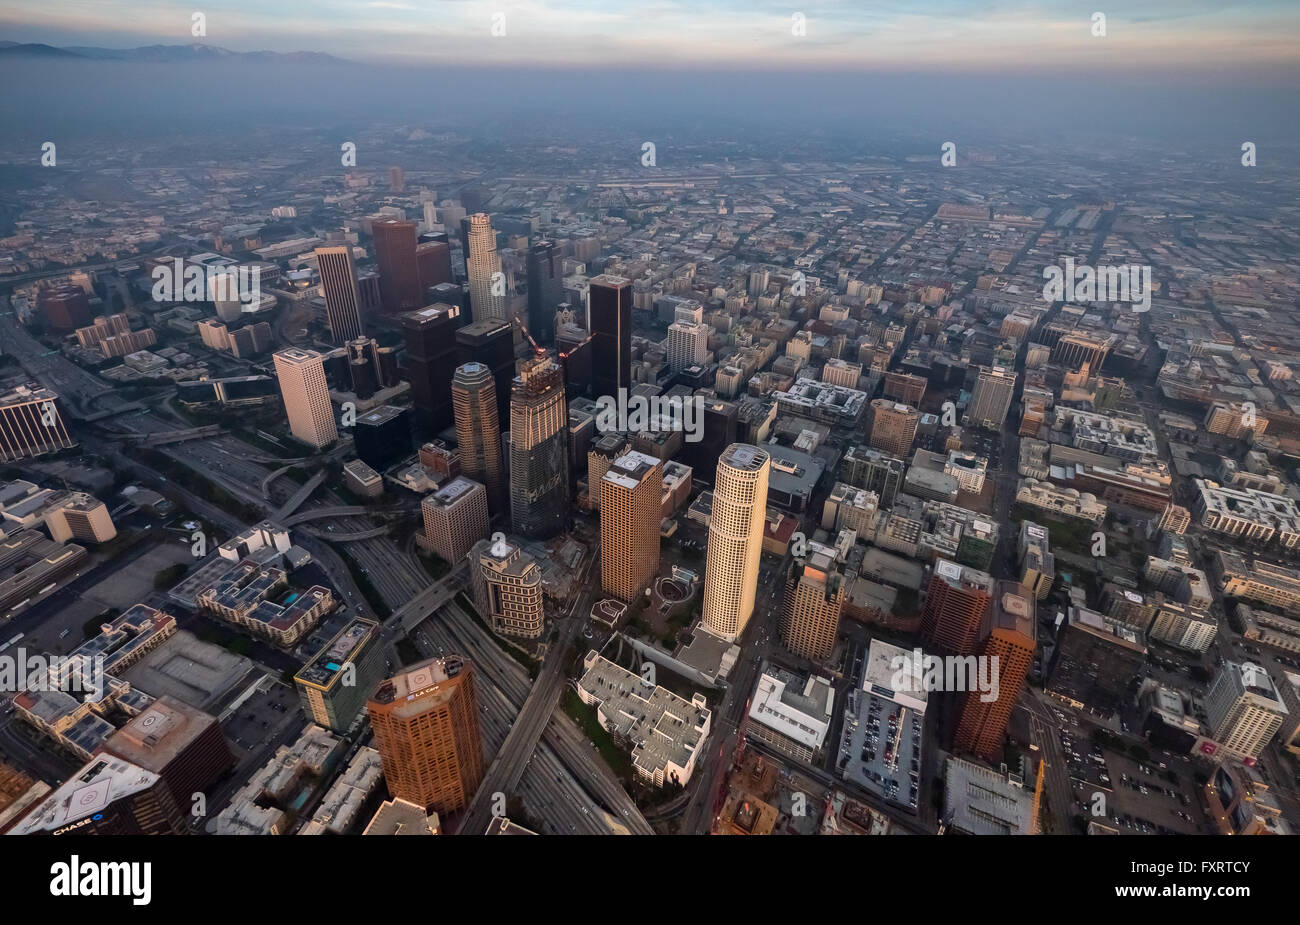 Aerial view skyscrapers of downtown los angeles in the haze smog aerial view skyscrapers of downtown los angeles in the haze smog los angeles sciox Gallery